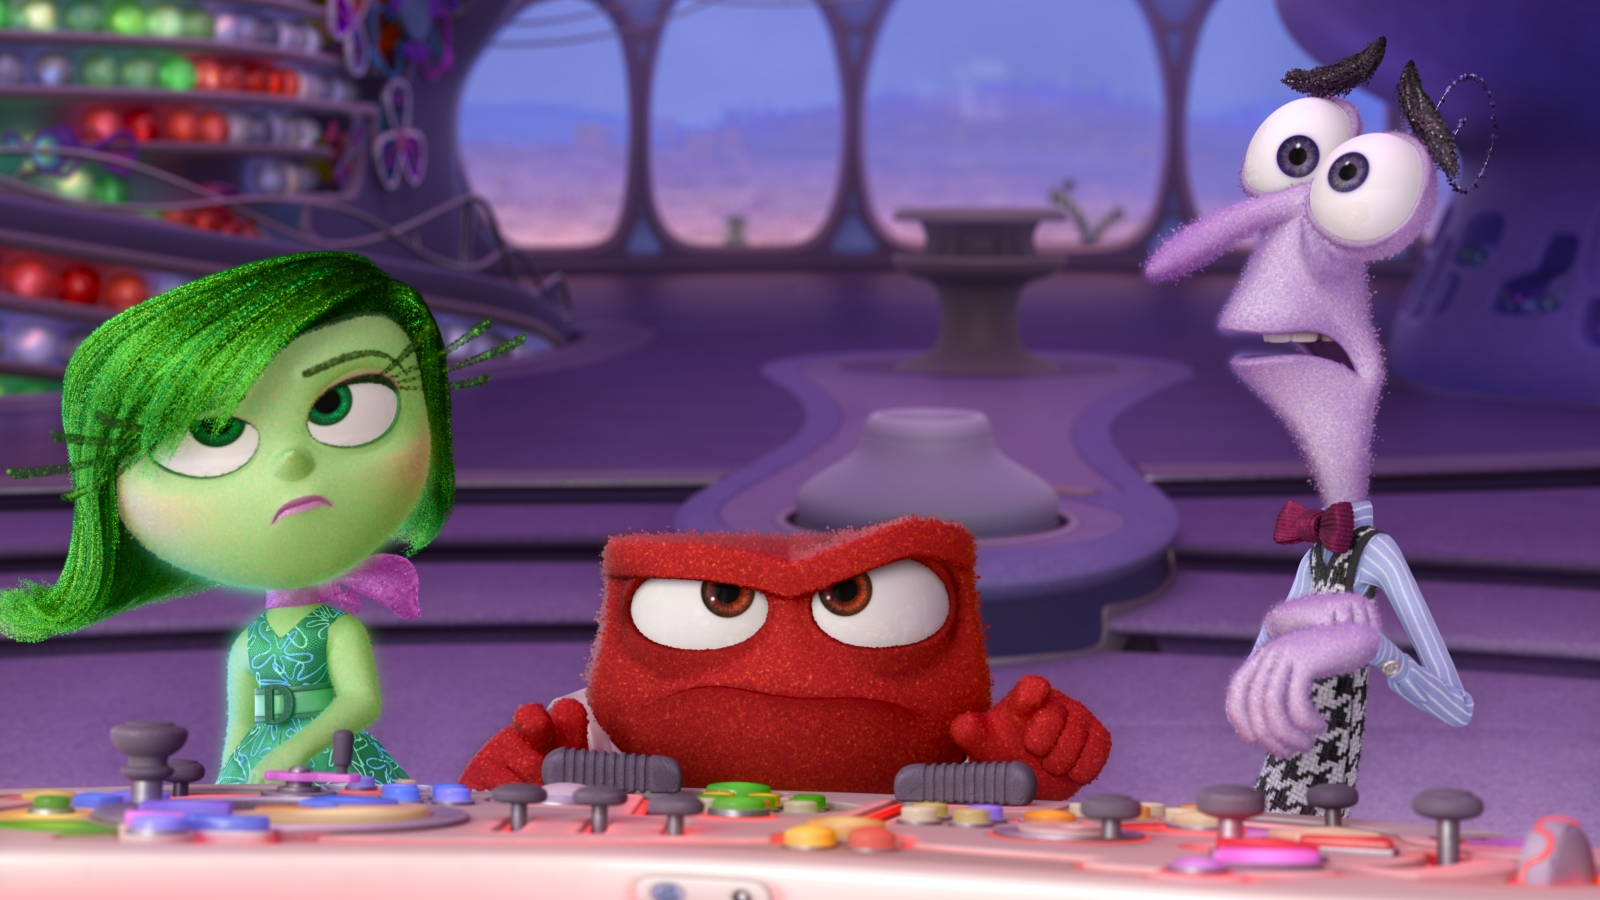 Disgust, Anger and Fear from Inside Out